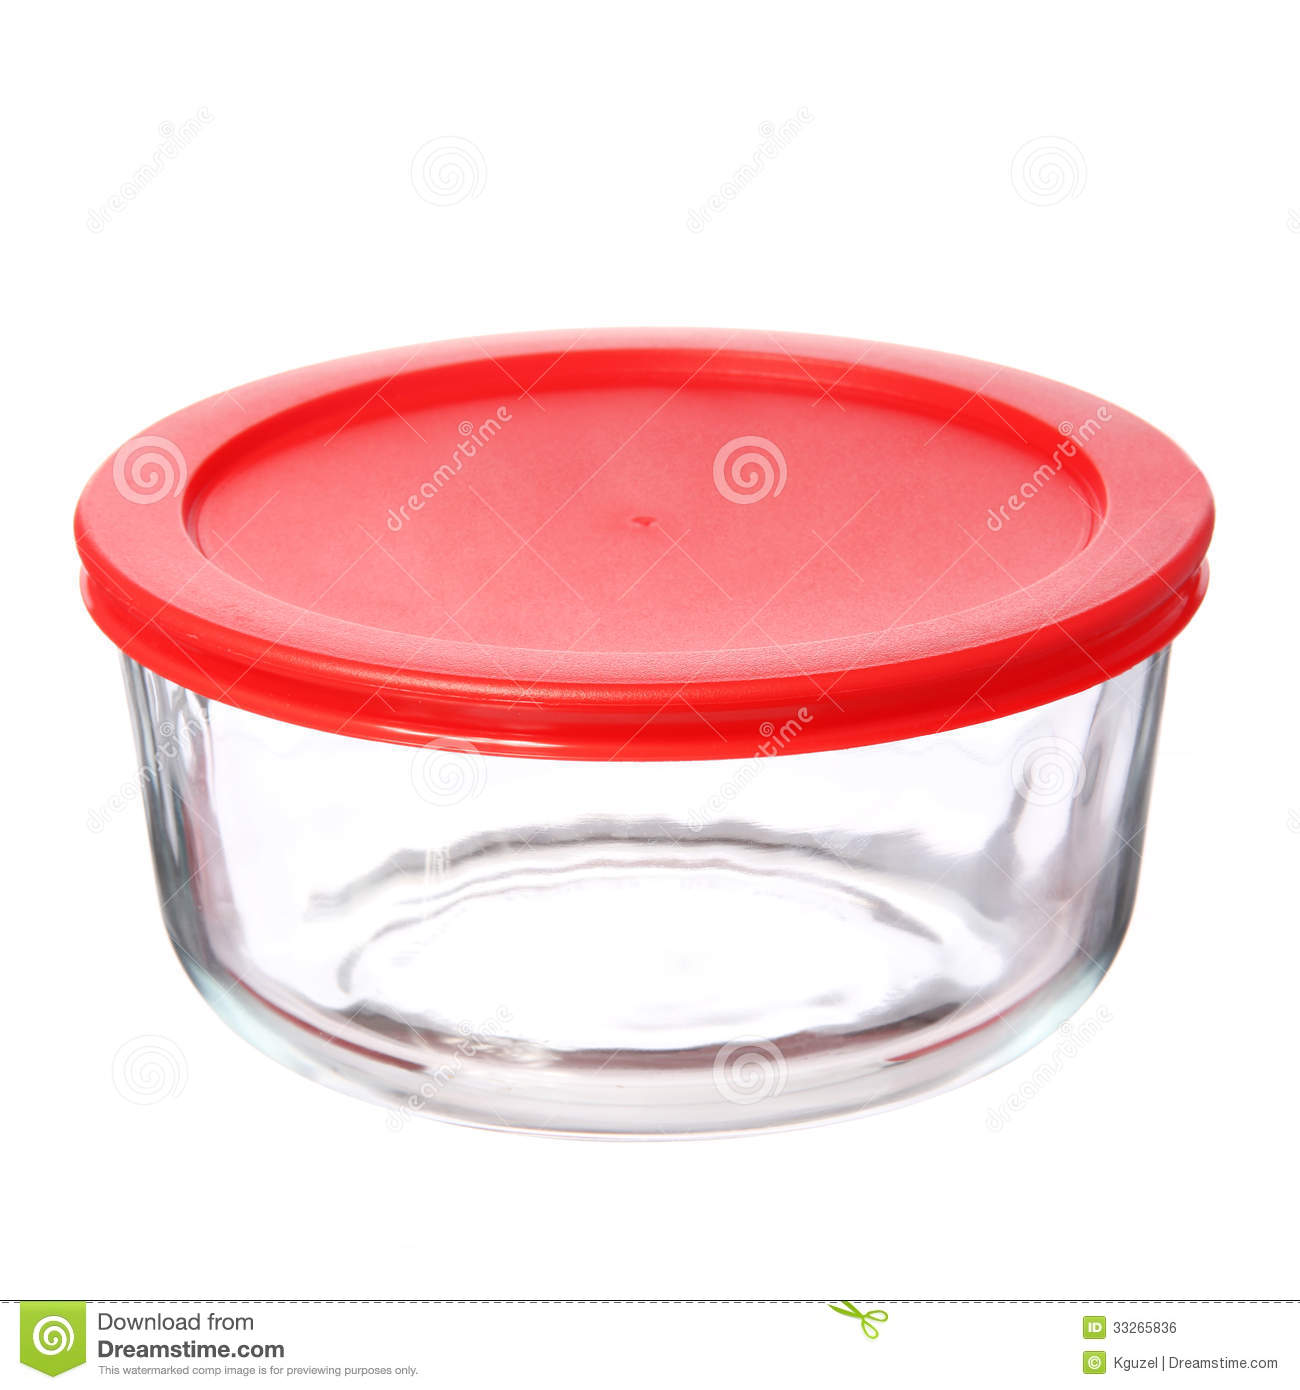 Food Container Clipart Glass Food Container With Red Plastic Lid On